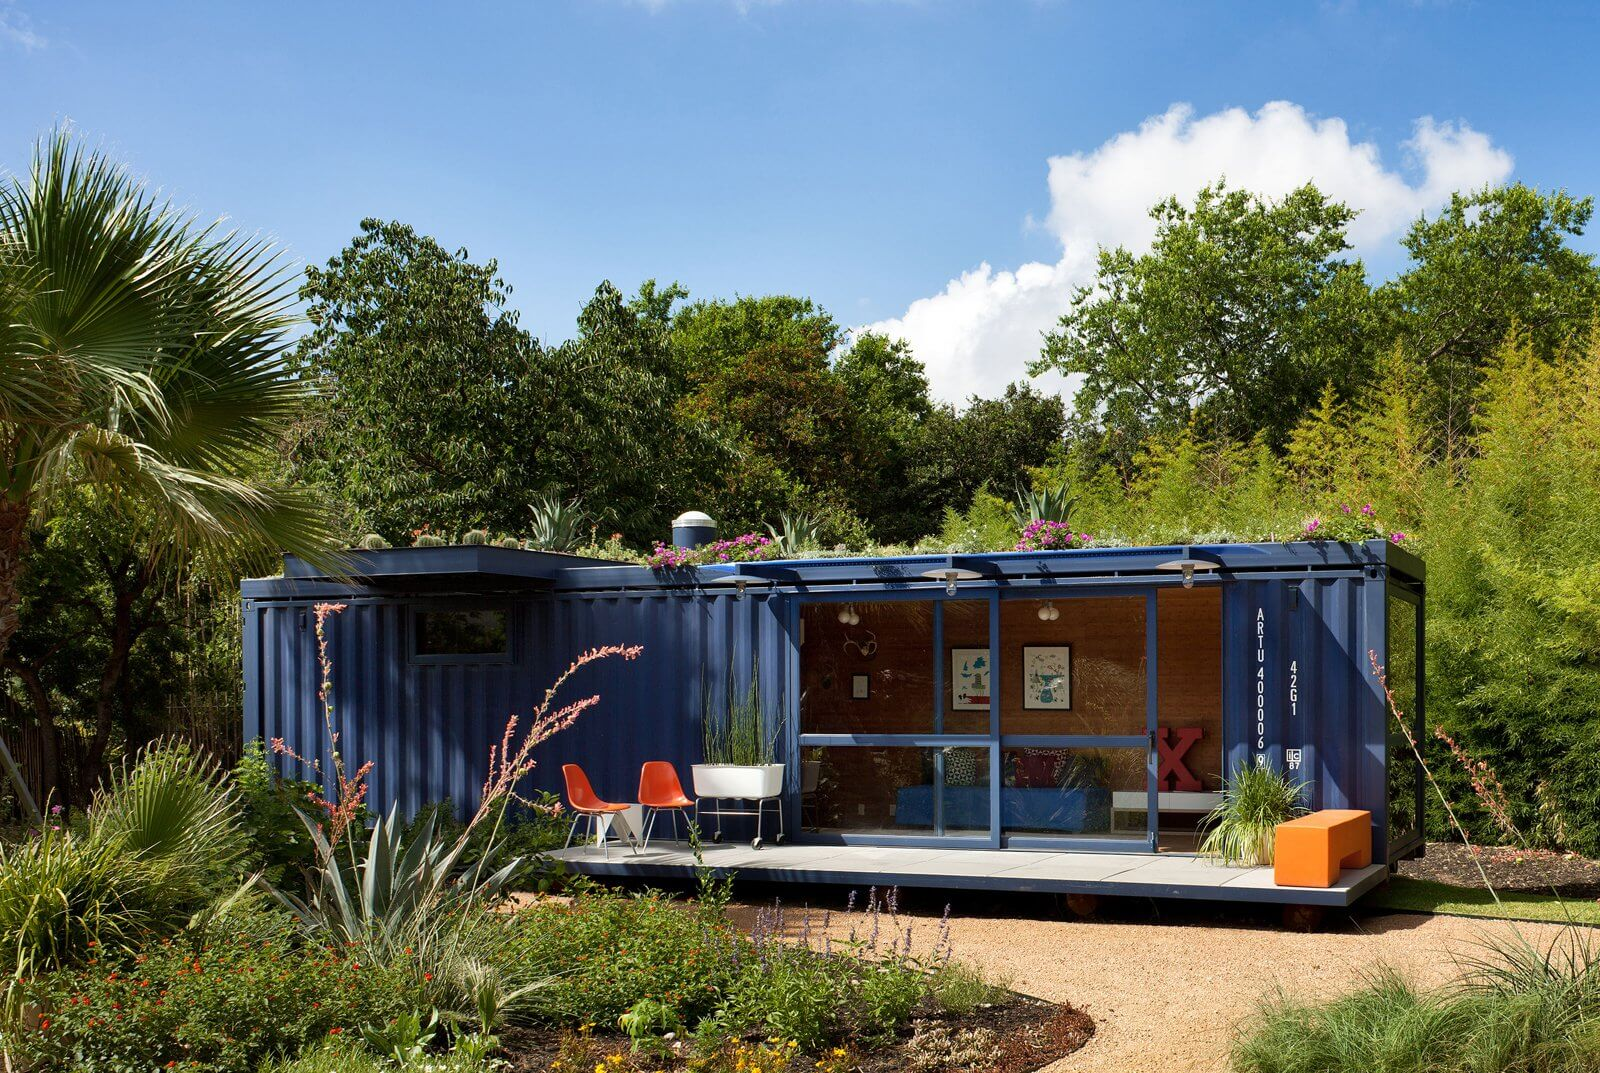 Shipping container homes are very affordable